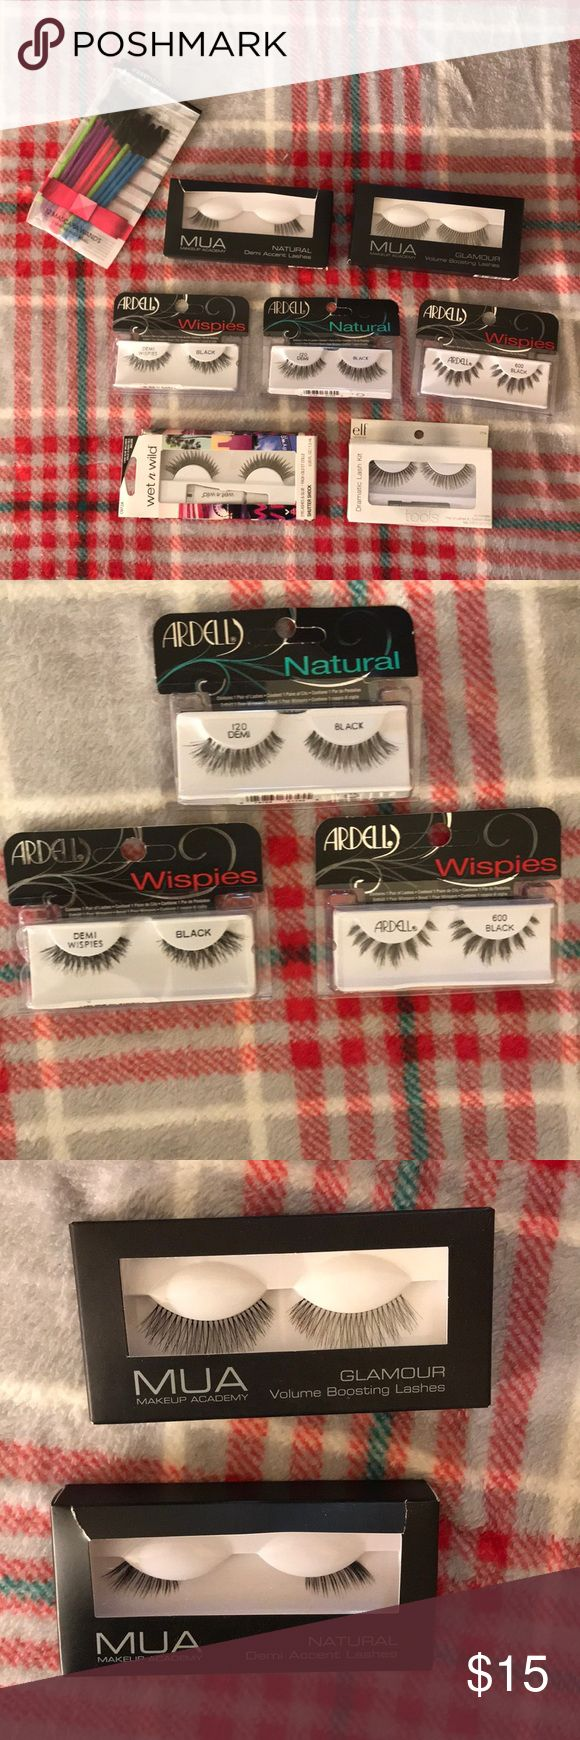 Eyelashes Bundle! ARDELL, MUA MAKEUP ACADEMY, etc. Great brands like ARDELL including the infamous Demi Wispies, as well as, Demi natural and classic black wispies. Also, MUA Makeup Academy Demi accent, and Glamour Boosting Lashes. e.l.f. Dramatic Lash Kit (1 pair lashes, 1 lash glue). Last but not least, wet n wild Shutter Shock eyelashes and lash glue included. Throwing in, as well, 12 disposable mascara wands by essential tools. Offer up! Stay beautiful gals and gentlemen 💄👄👸